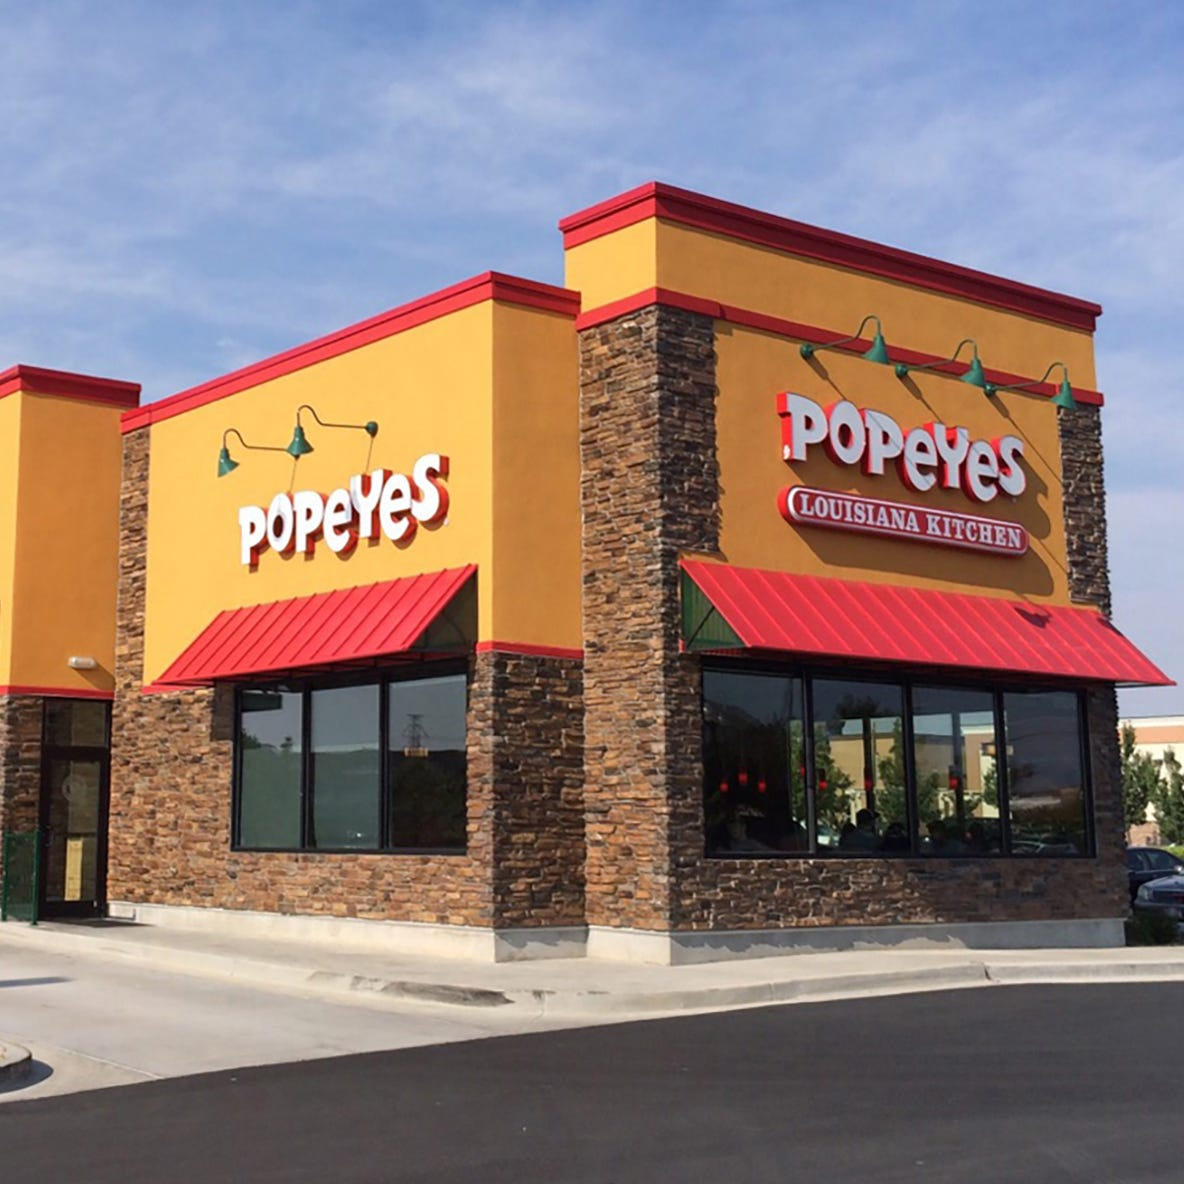 In the Know: Popeyes set to launch in May in Naples area